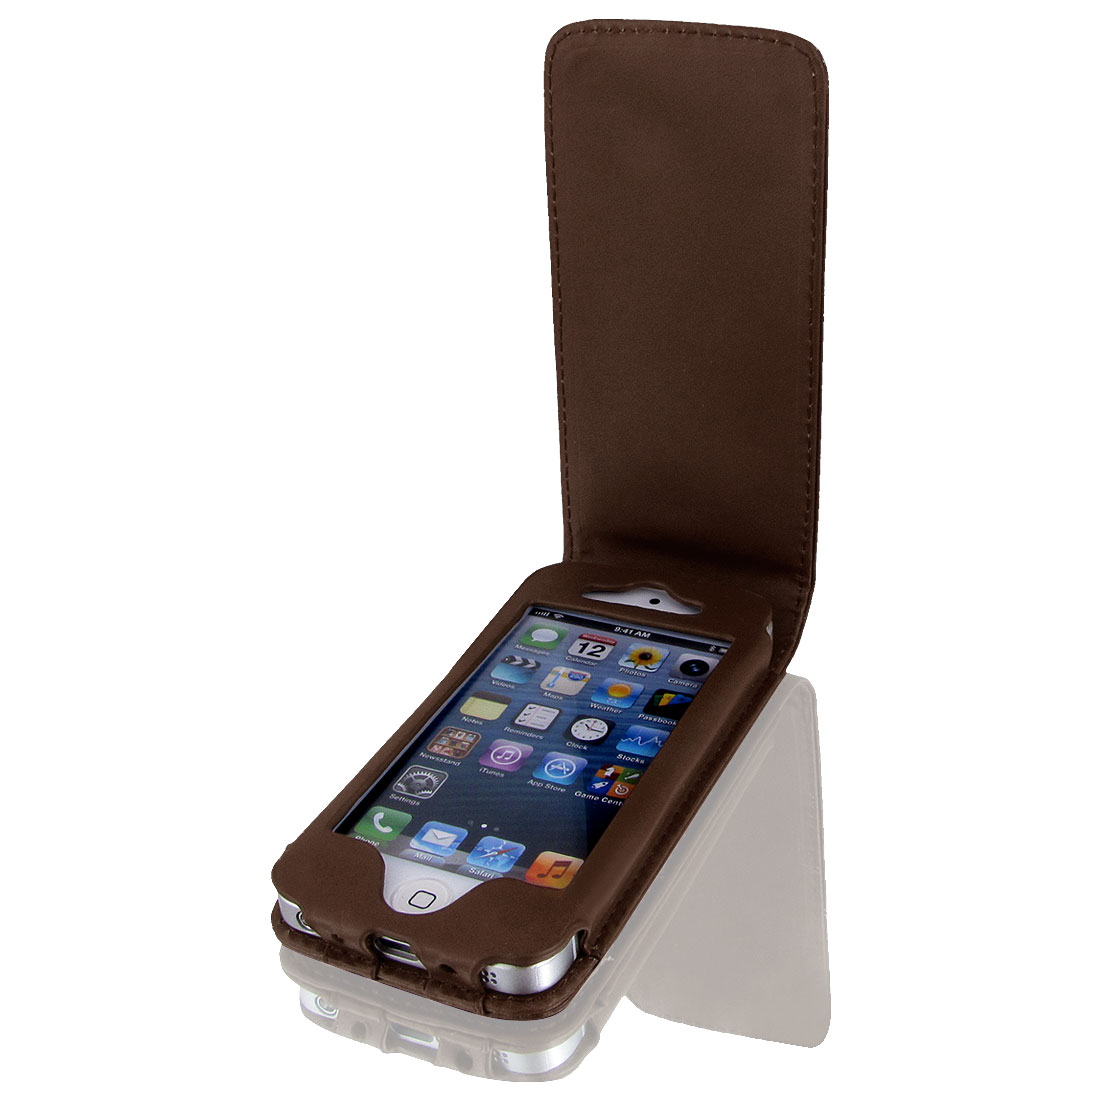 Brown Faux Leather Magnetic Flip Phone Pouch Case Cover for iPhone 5 5G 5th